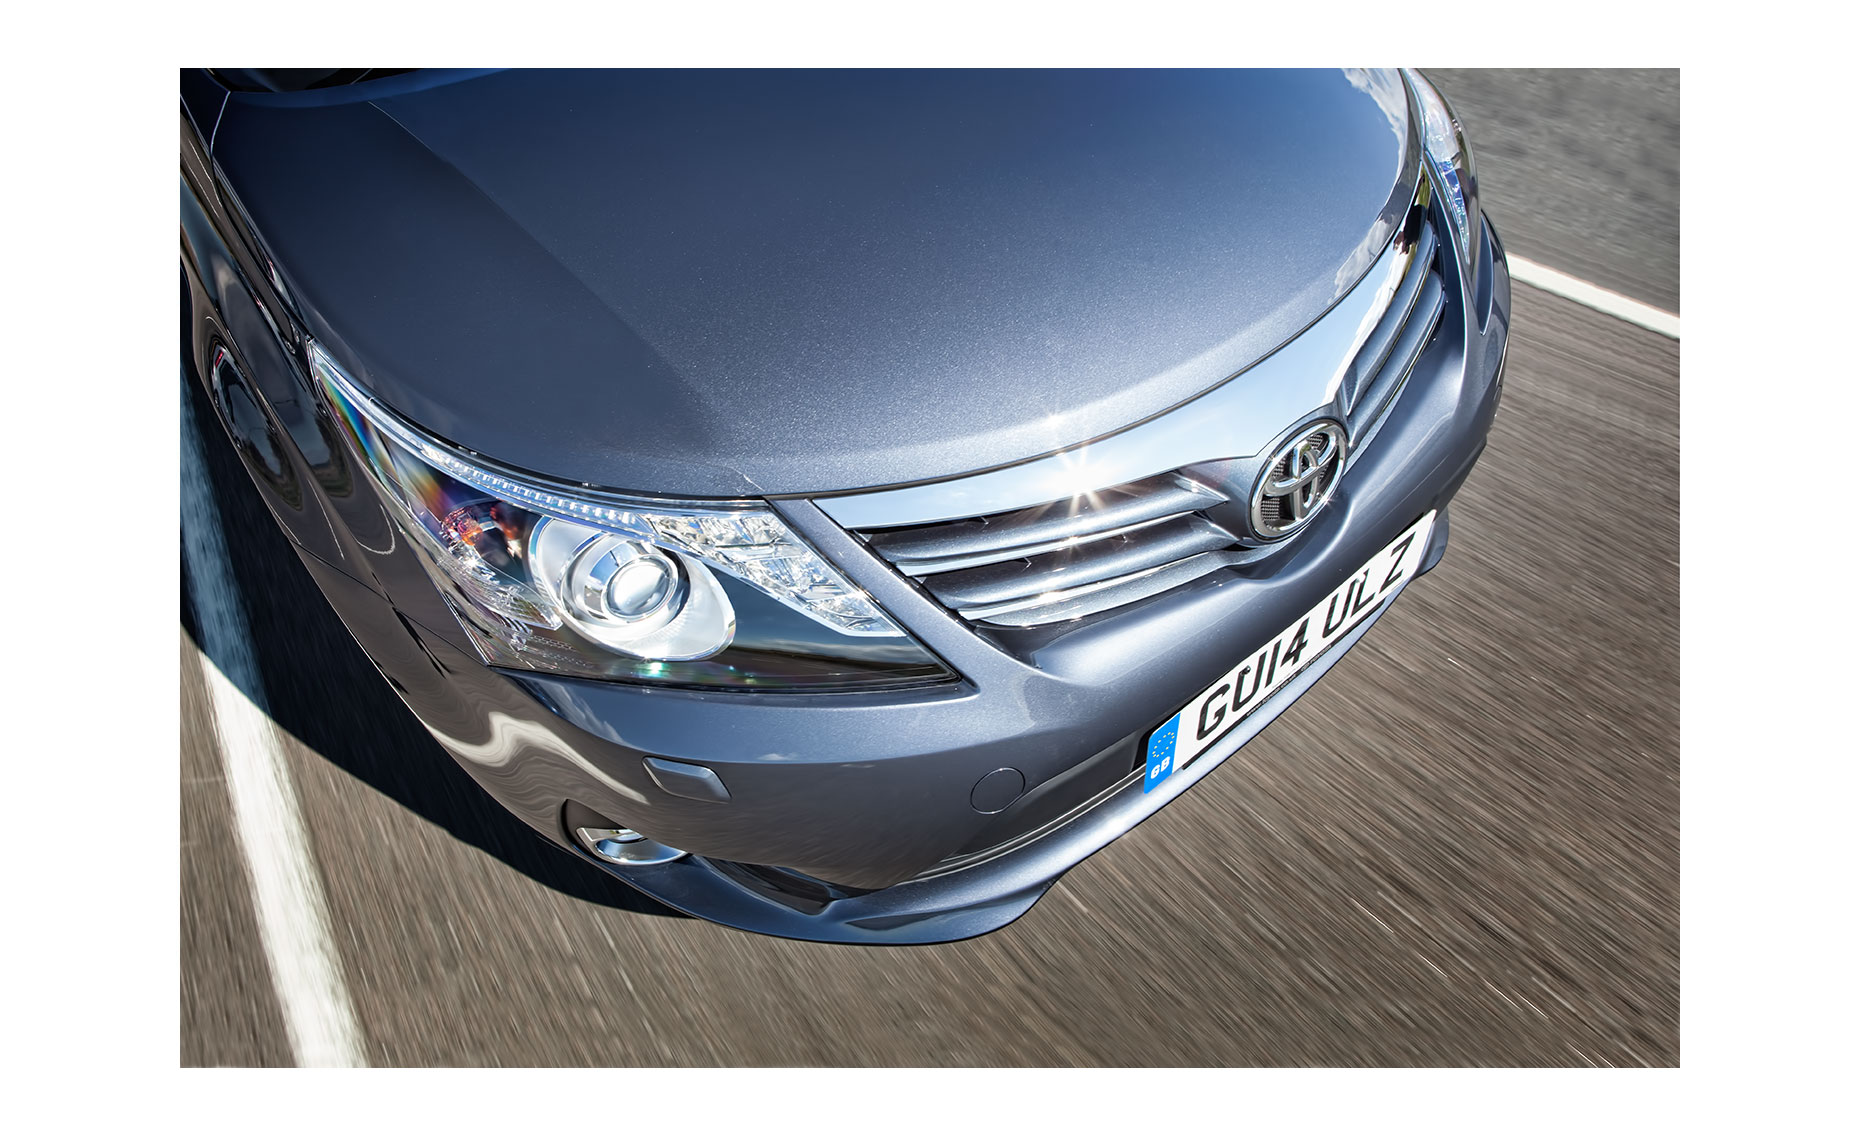 Toyota Avensis Detail | NFP Car Photo